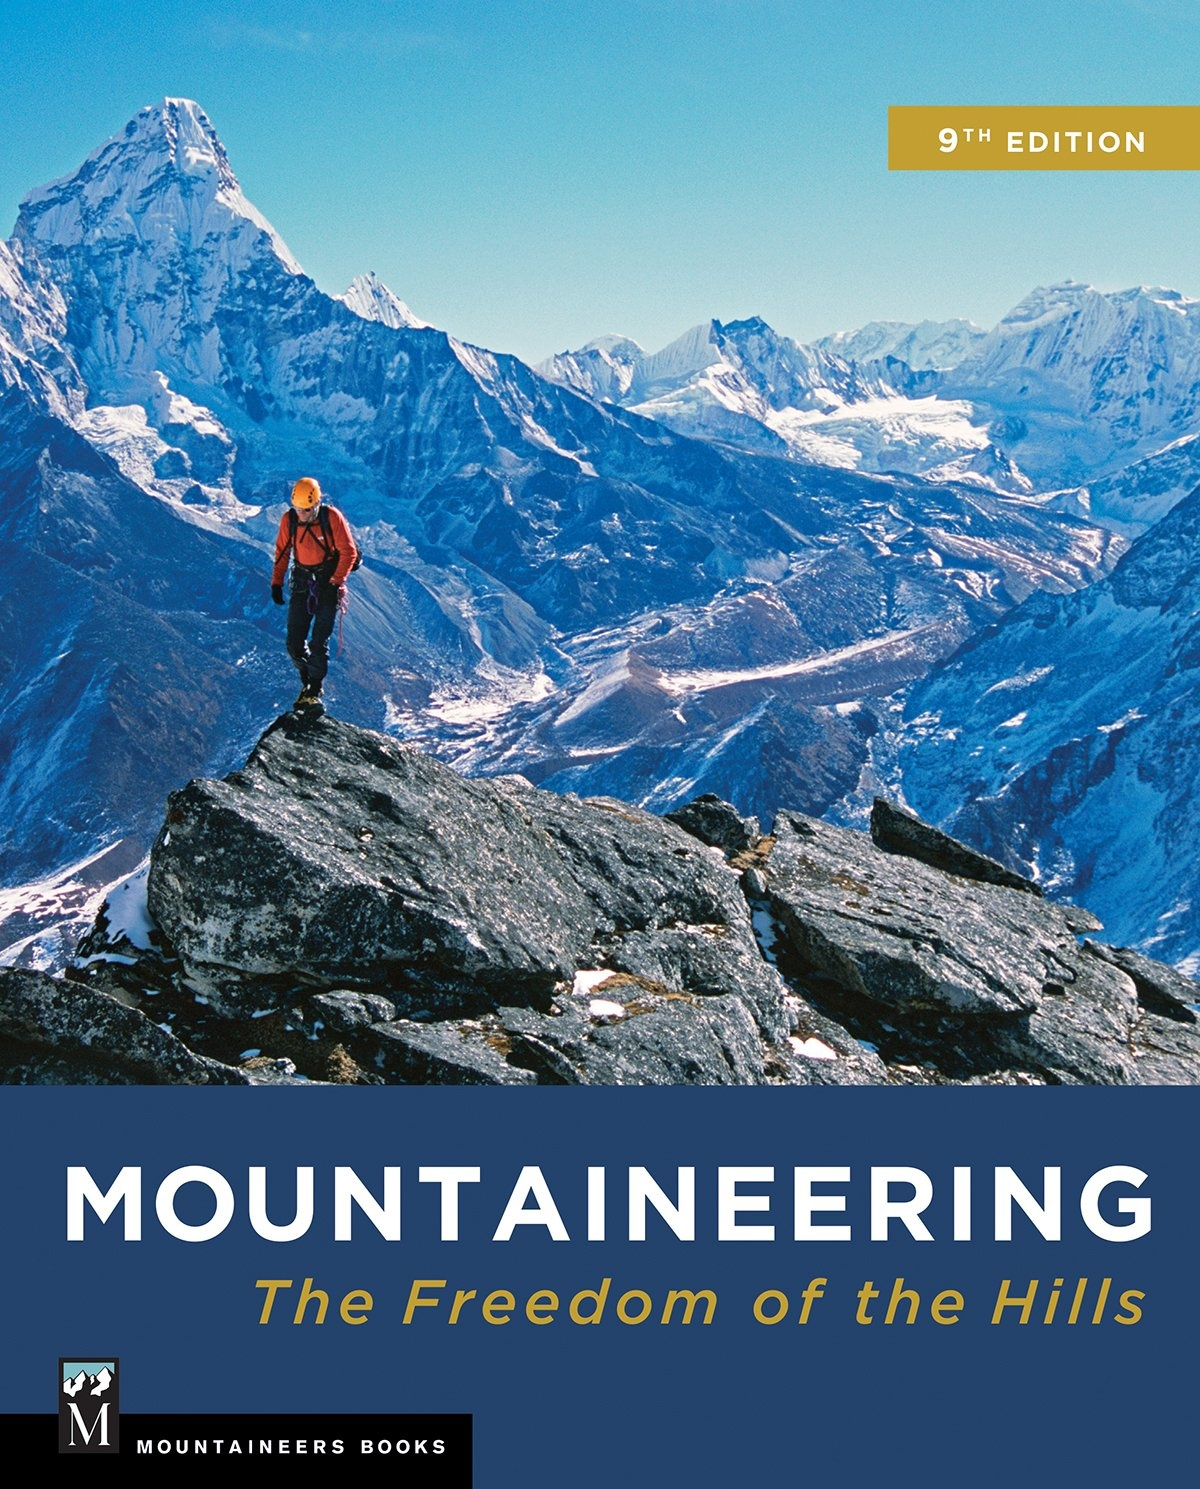 Mountaineering: The Freedom of the Hills, 9th Edition by The Mountaineers, ISBN: 9781680510041